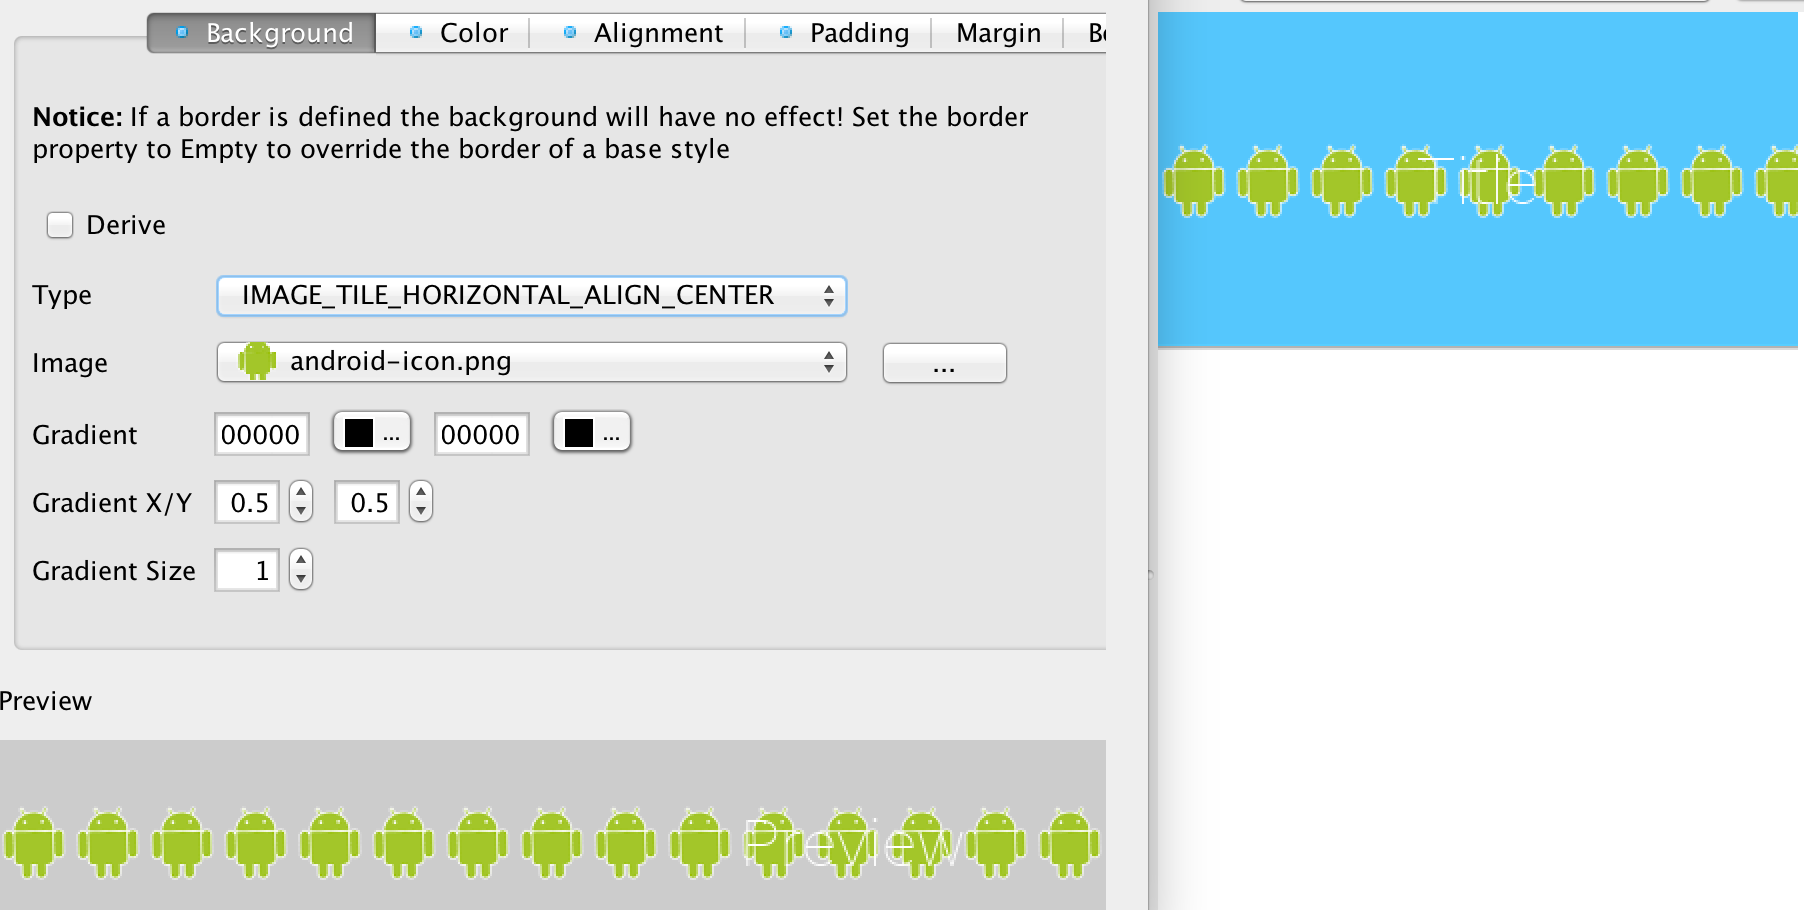 Background image align - Image_tile_horizontal_align_center Tiles The Image In The Middle Of The Component